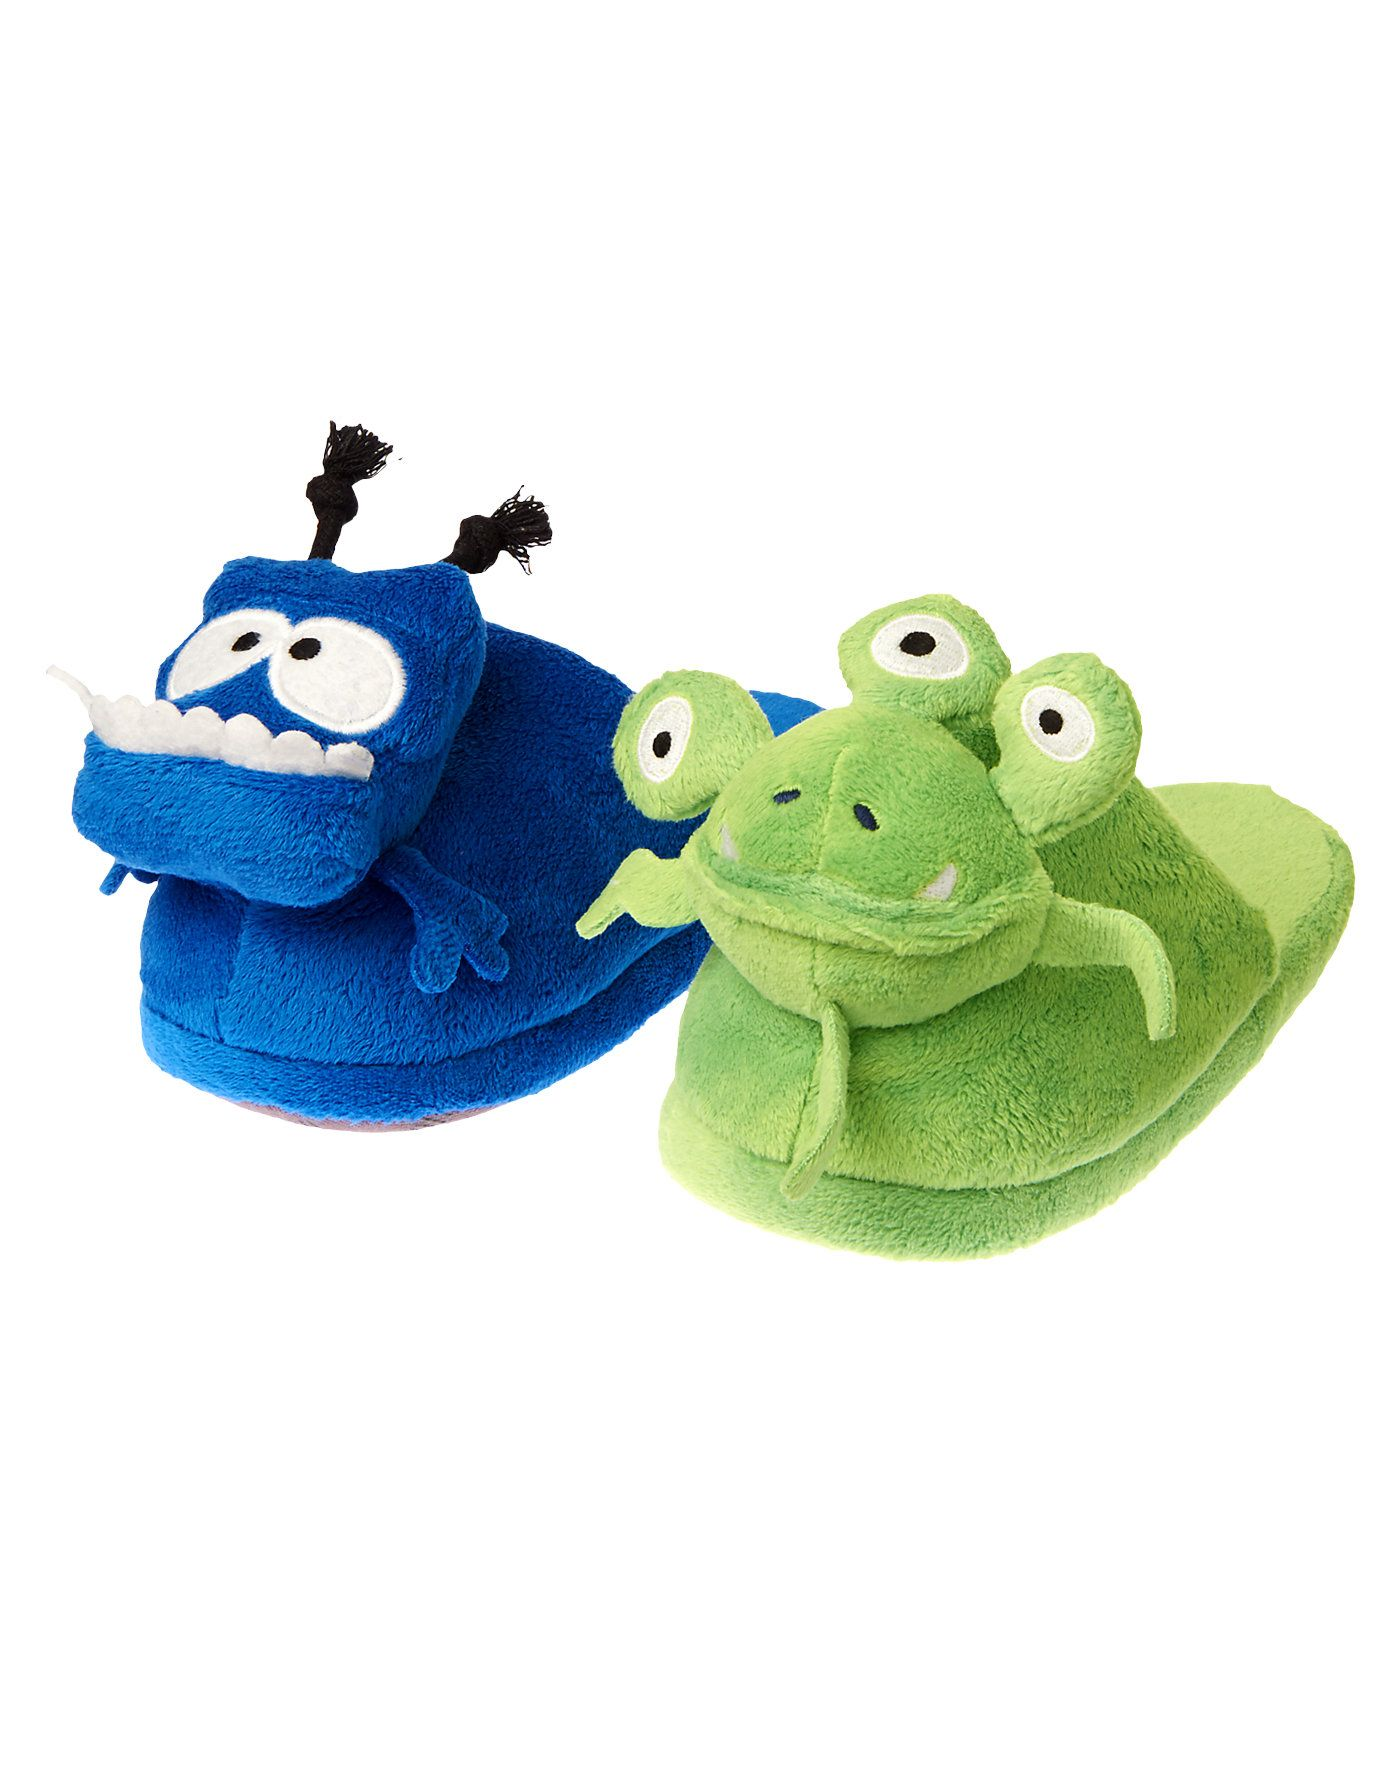 Funny blue and green aliens lead the way in these padded slip-on slippers.